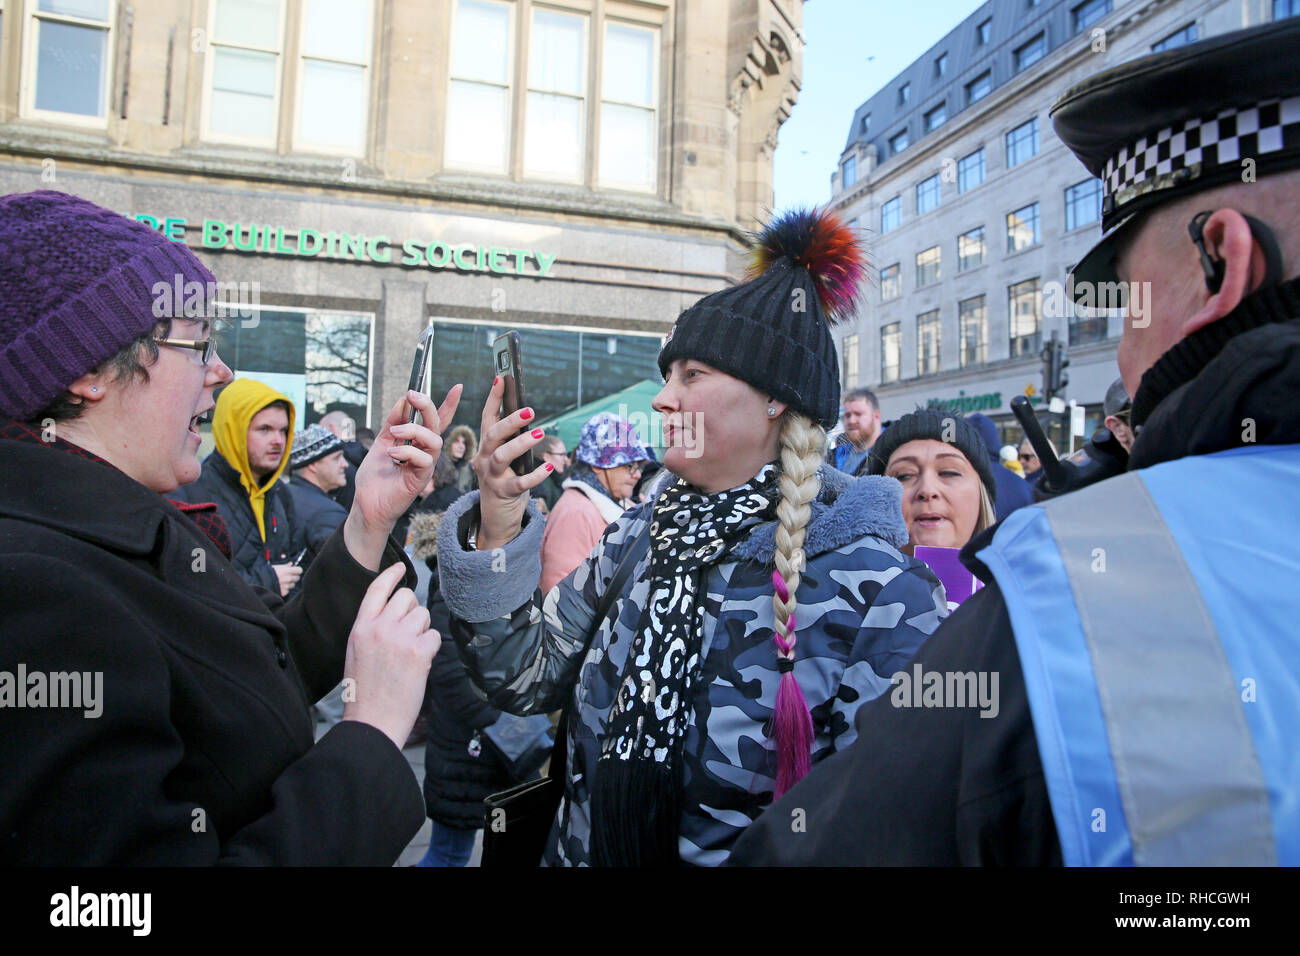 Manchester, UK. 2nd February 2019. Member of right wing 'yellow vest' UK movement on the right,filming an anti racist who is filming her during a stand off in Piccadilly Gardens,  Manchester, UK, 2nd February 2019 (C)Barbara Cook/Alamy Live News Credit: Barbara Cook/Alamy Live News - Stock Image